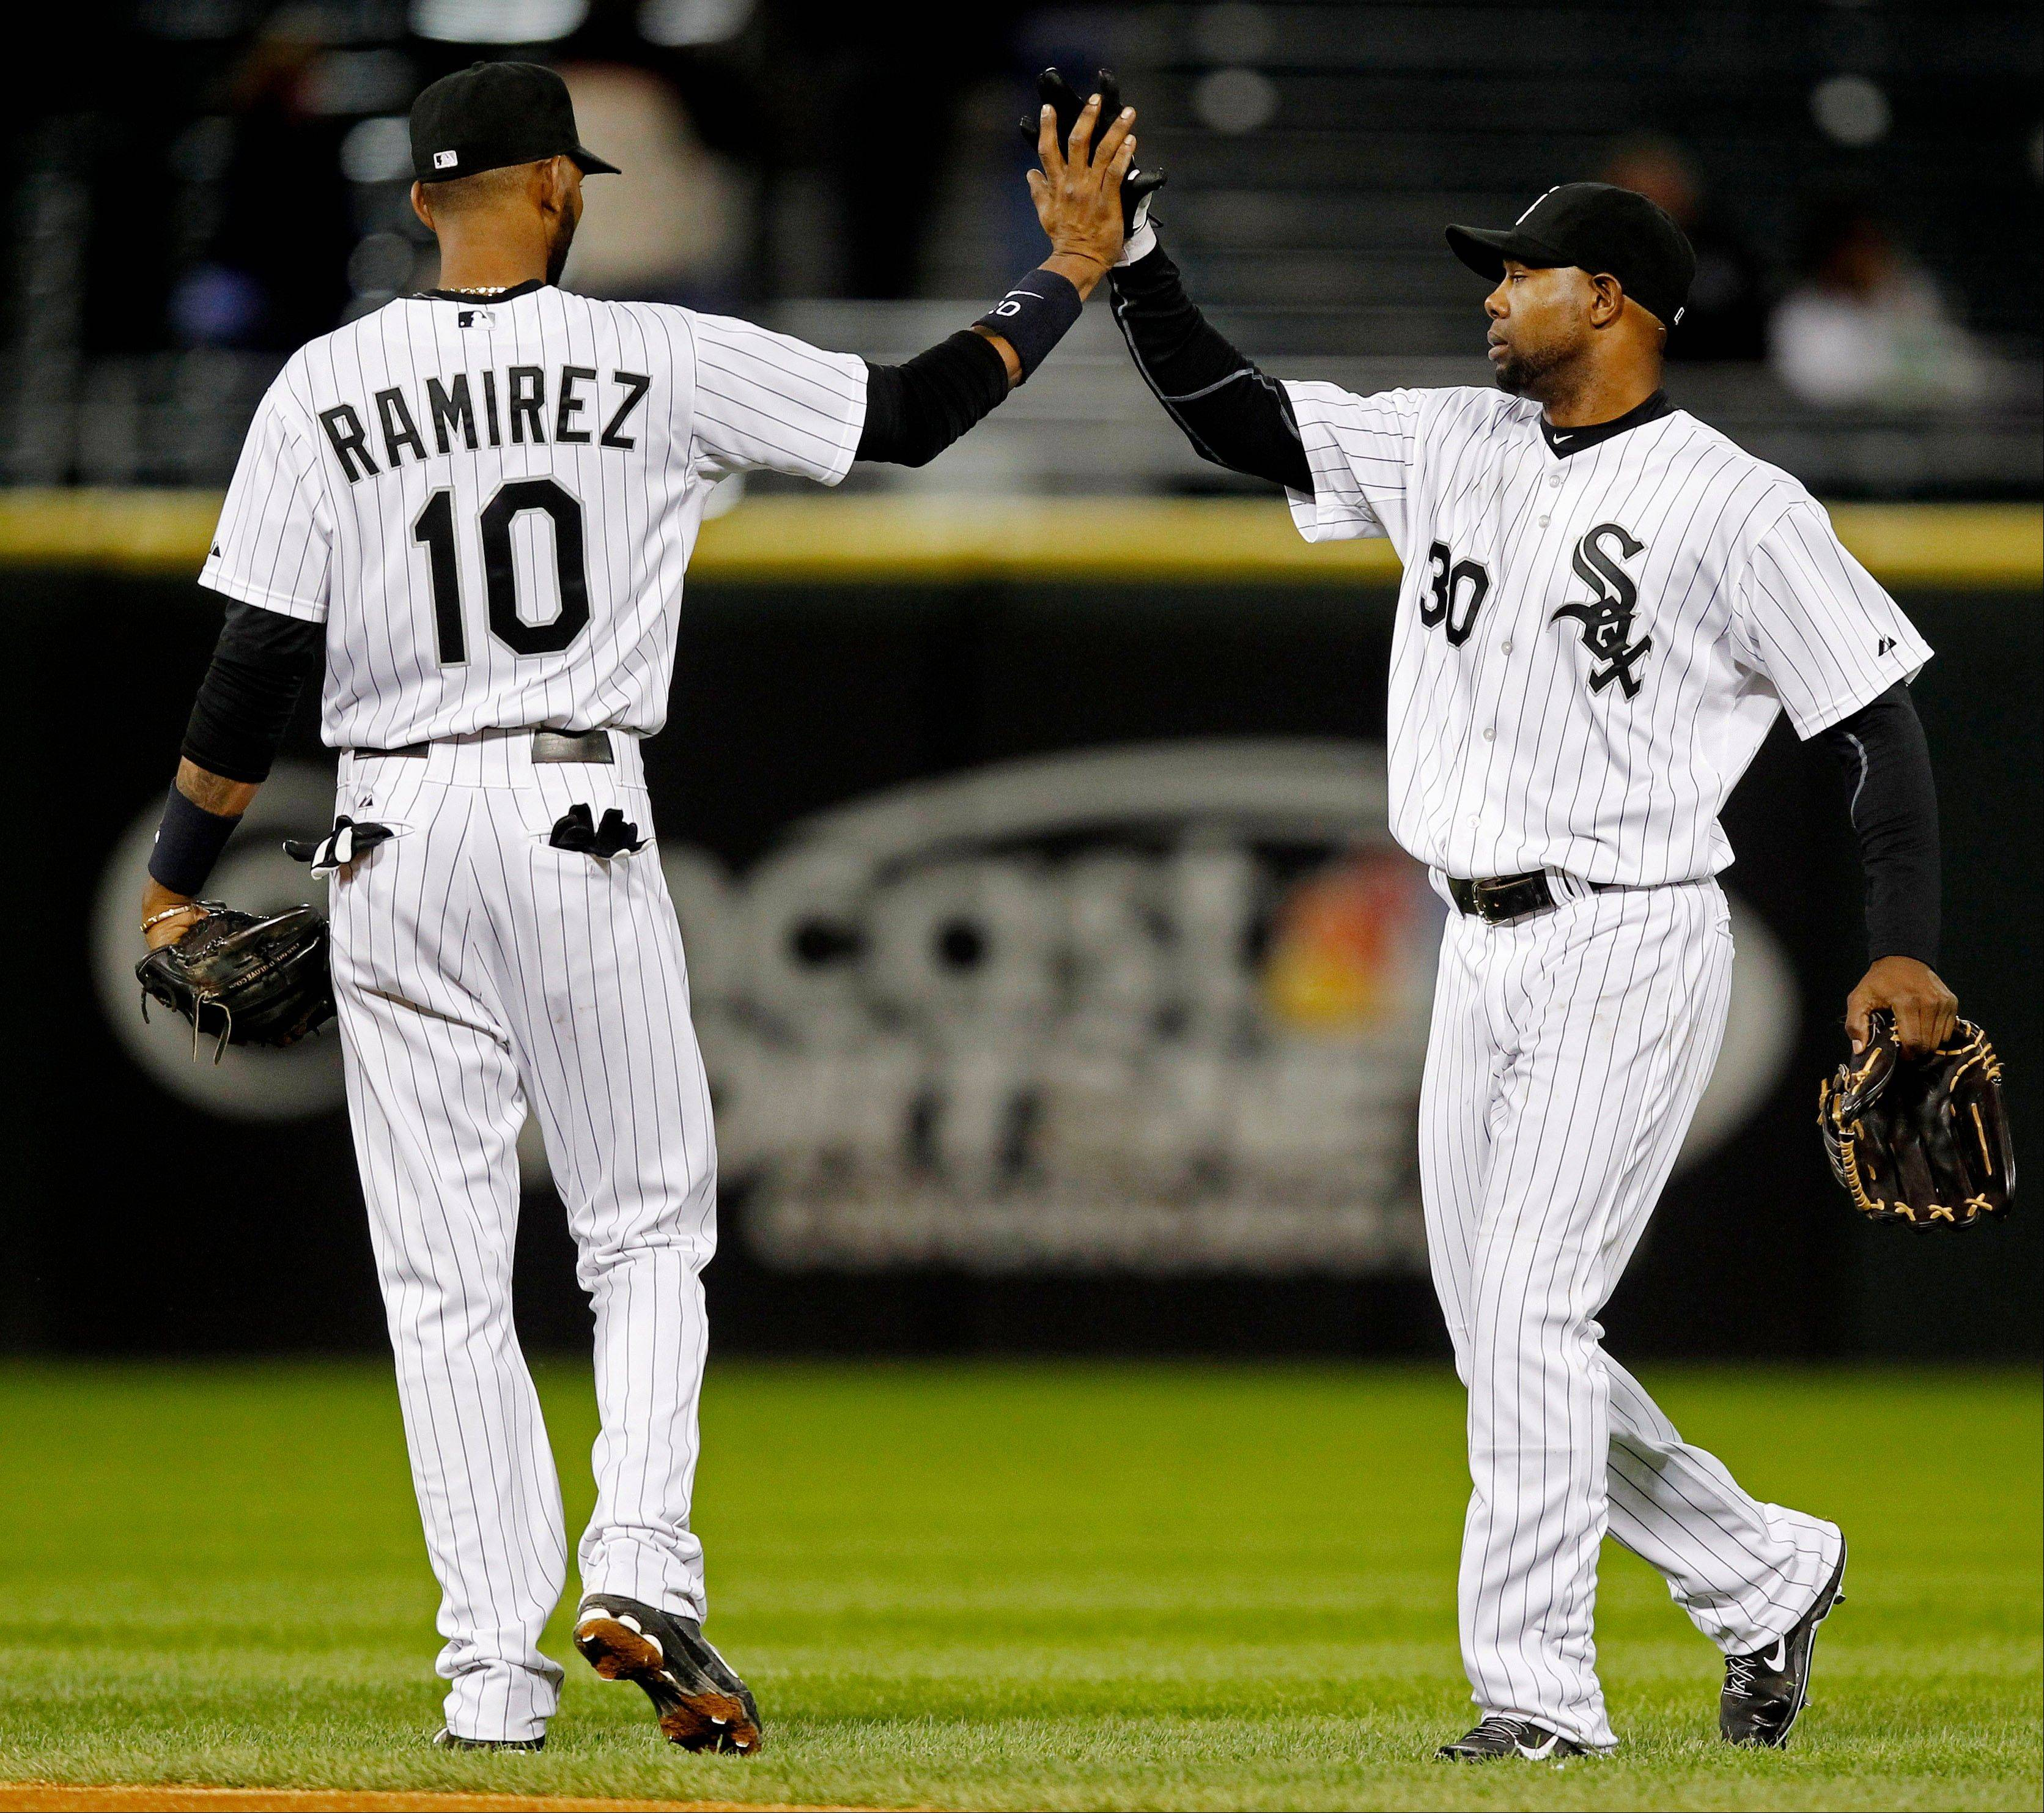 Chicago White Sox shortstop Alexei Ramirez and center fielder Alejandro De Aza celebrate their 3-2 victory against the Toronto Blue Jays in a baseball game on Monday in Chicago.